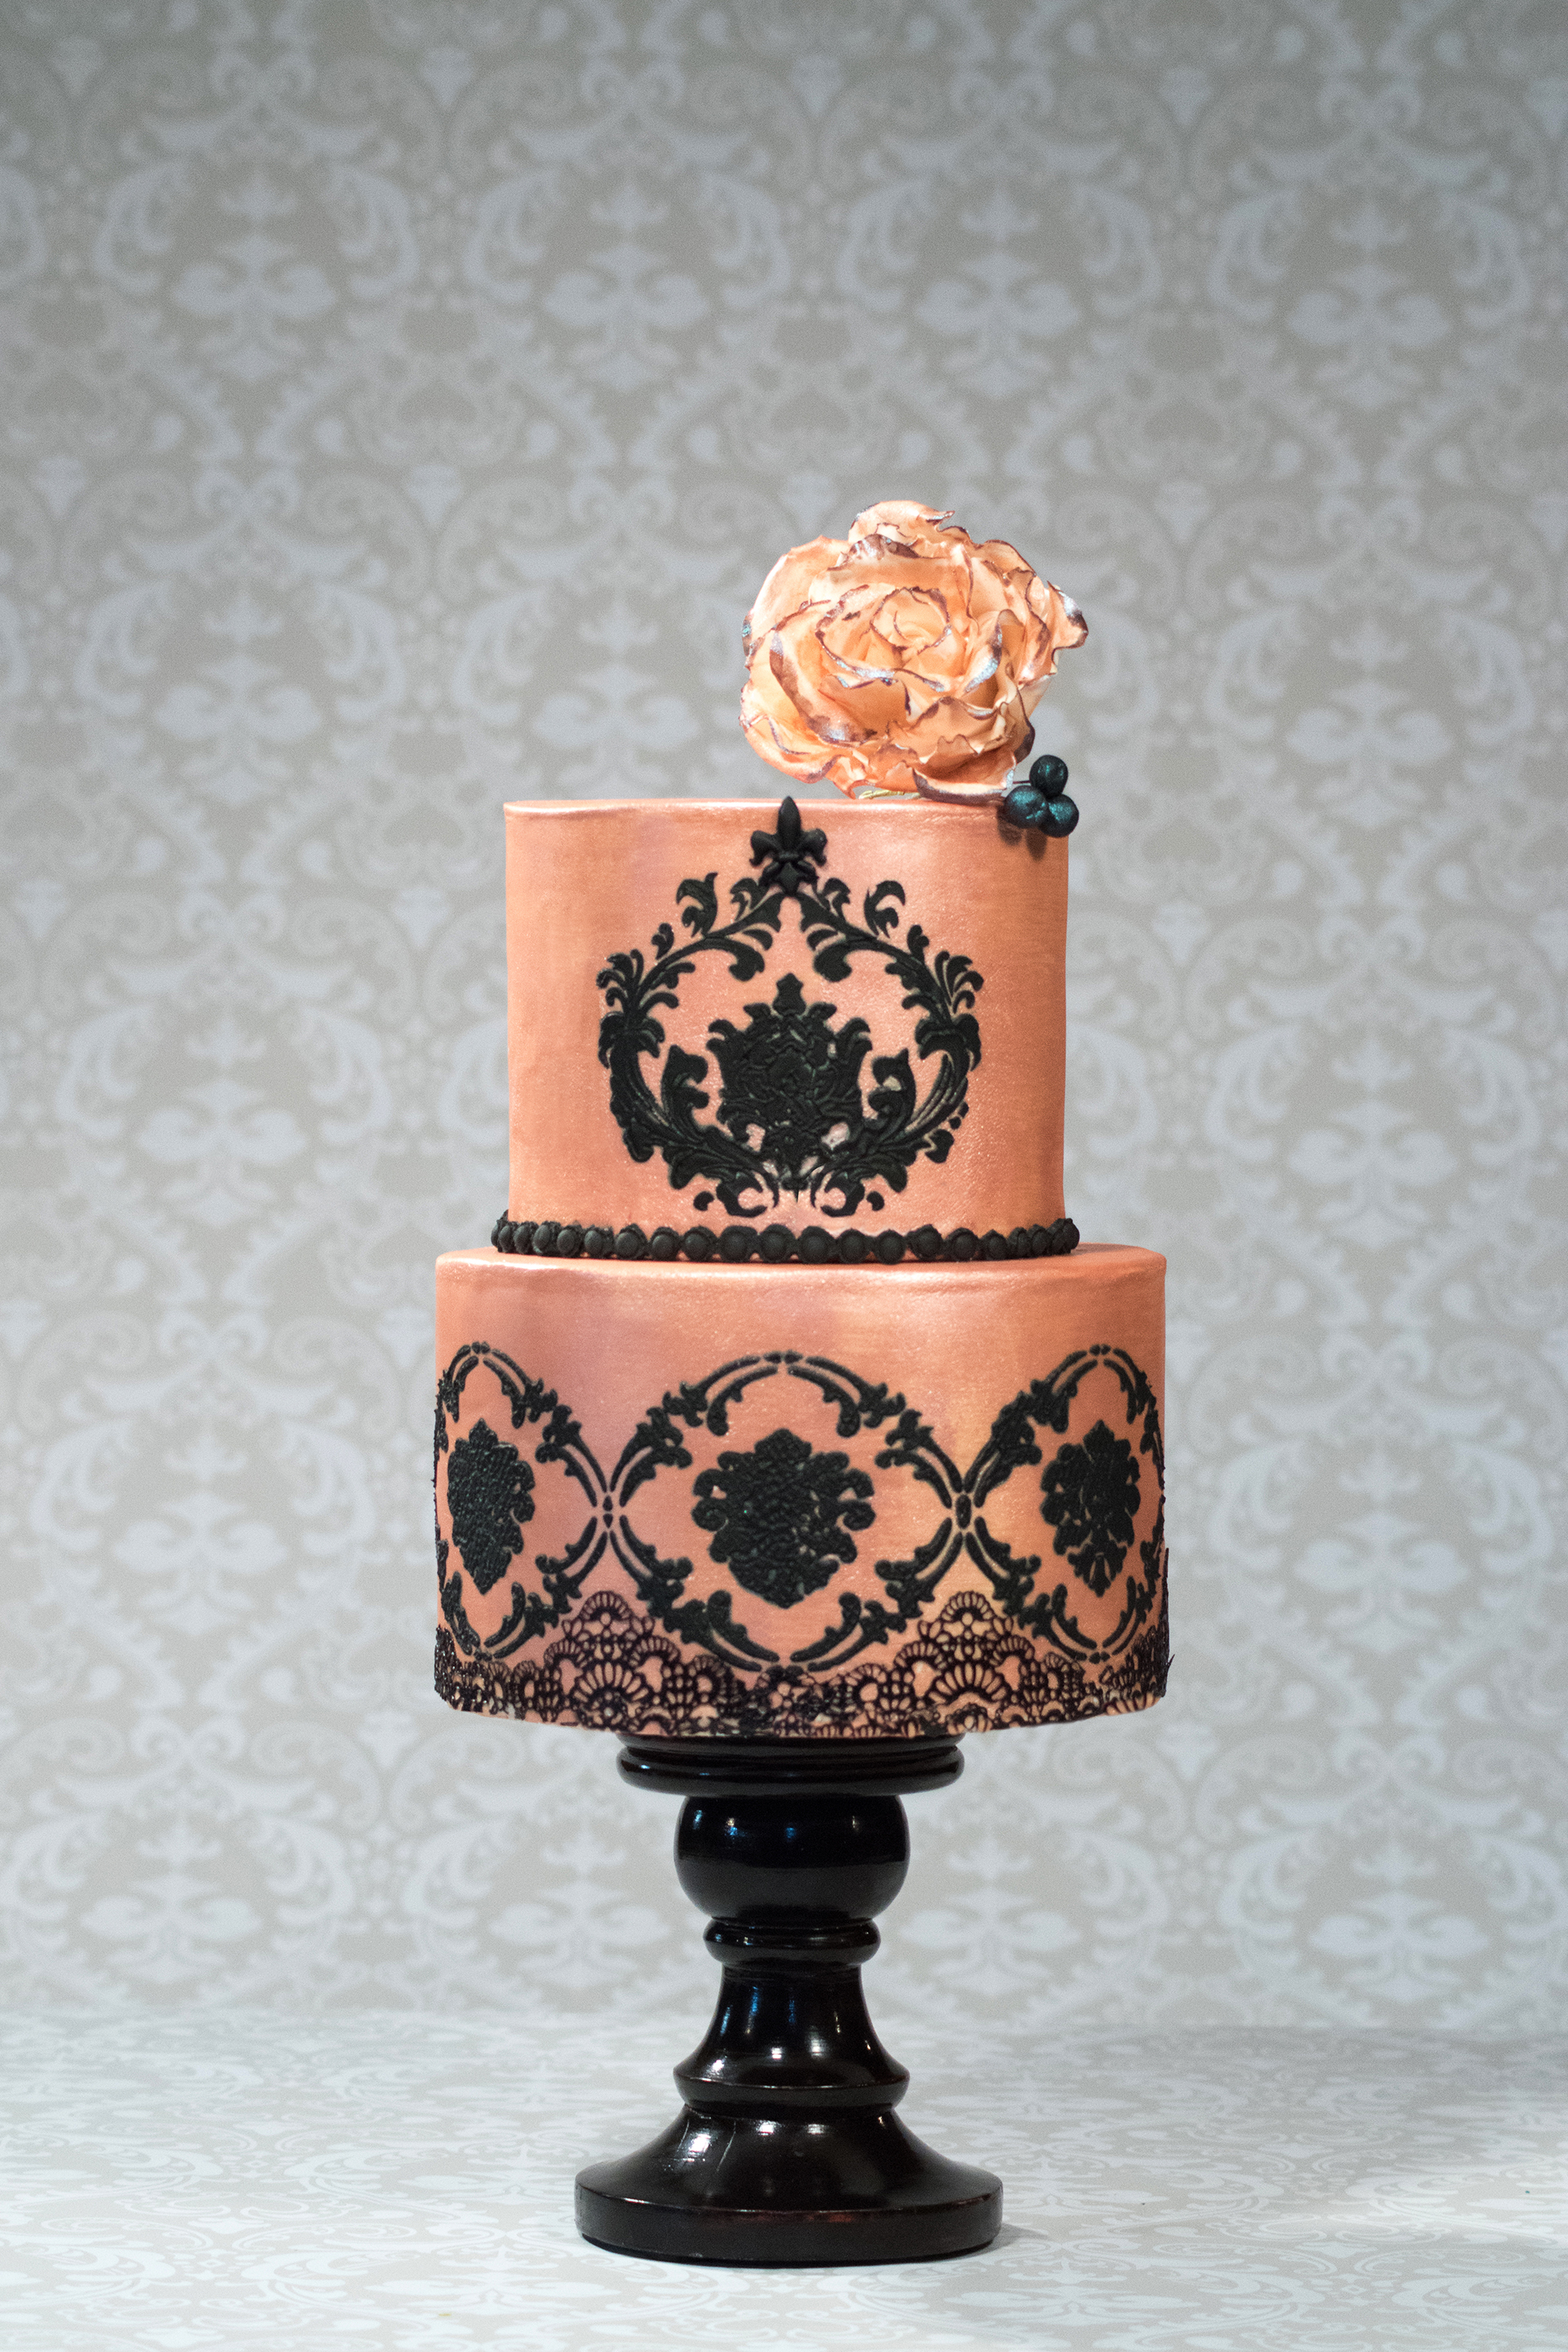 Pink with black lace wedding cake